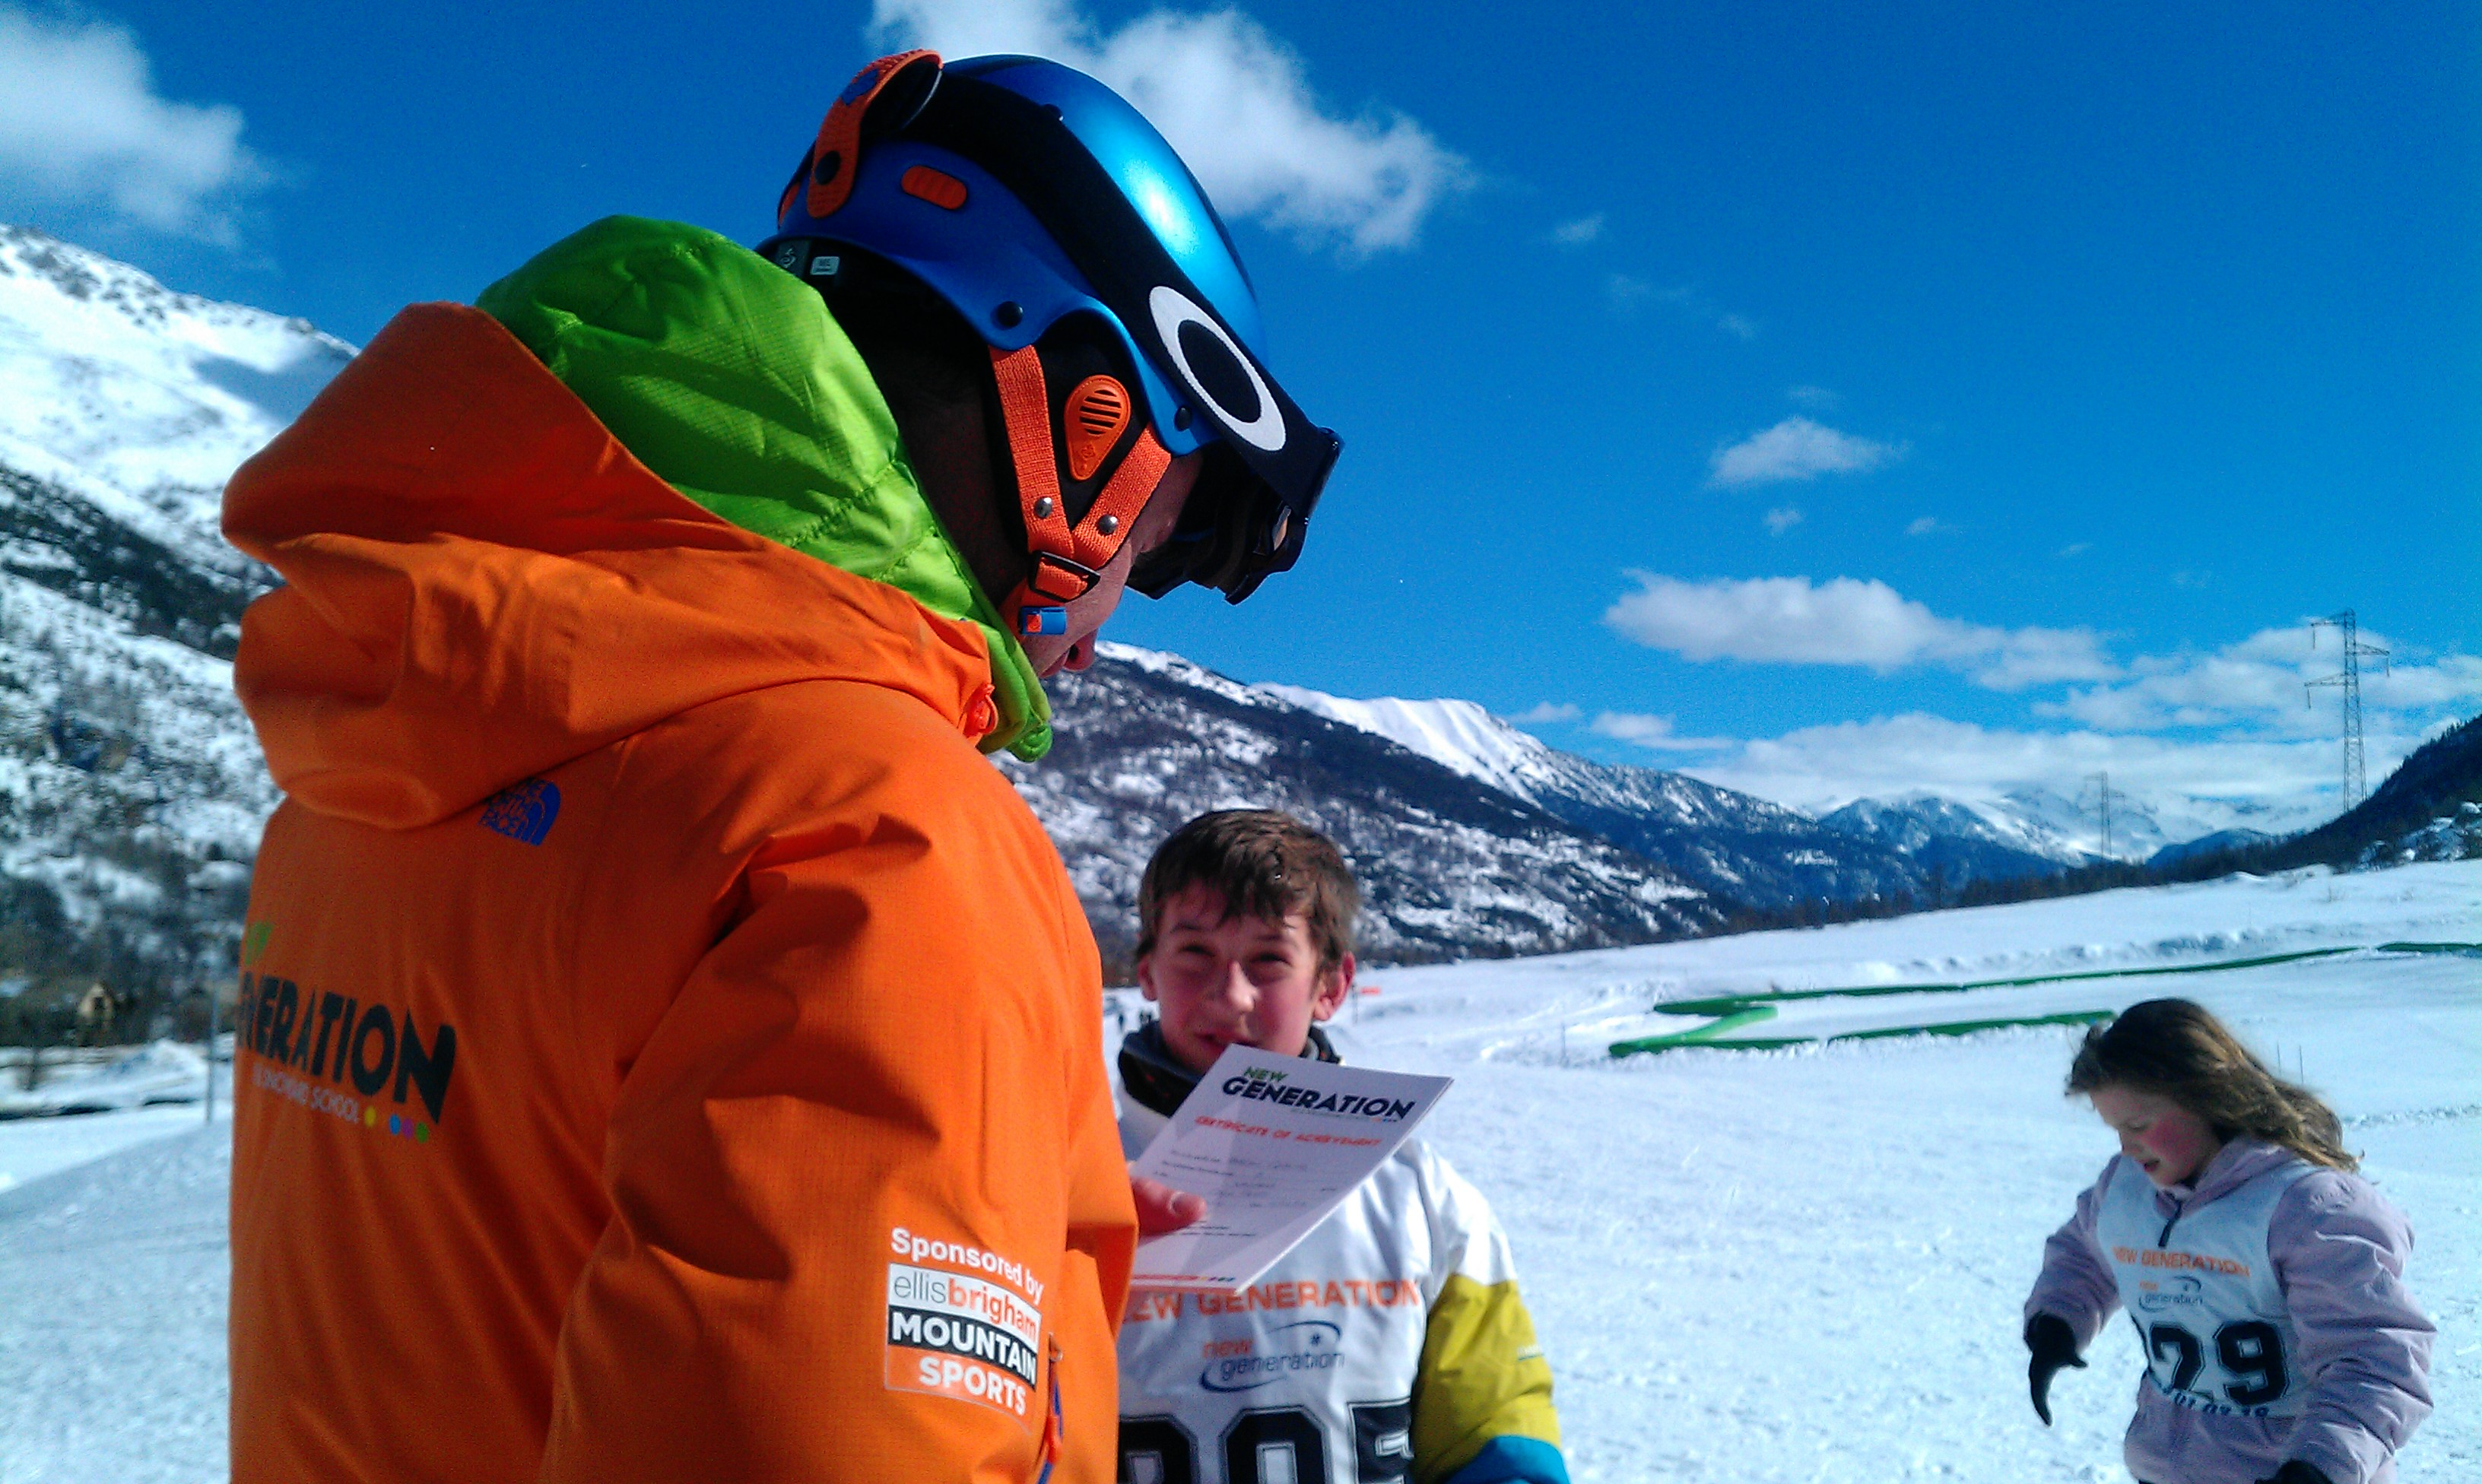 Certificates, badges and prizes from the BEST ski school